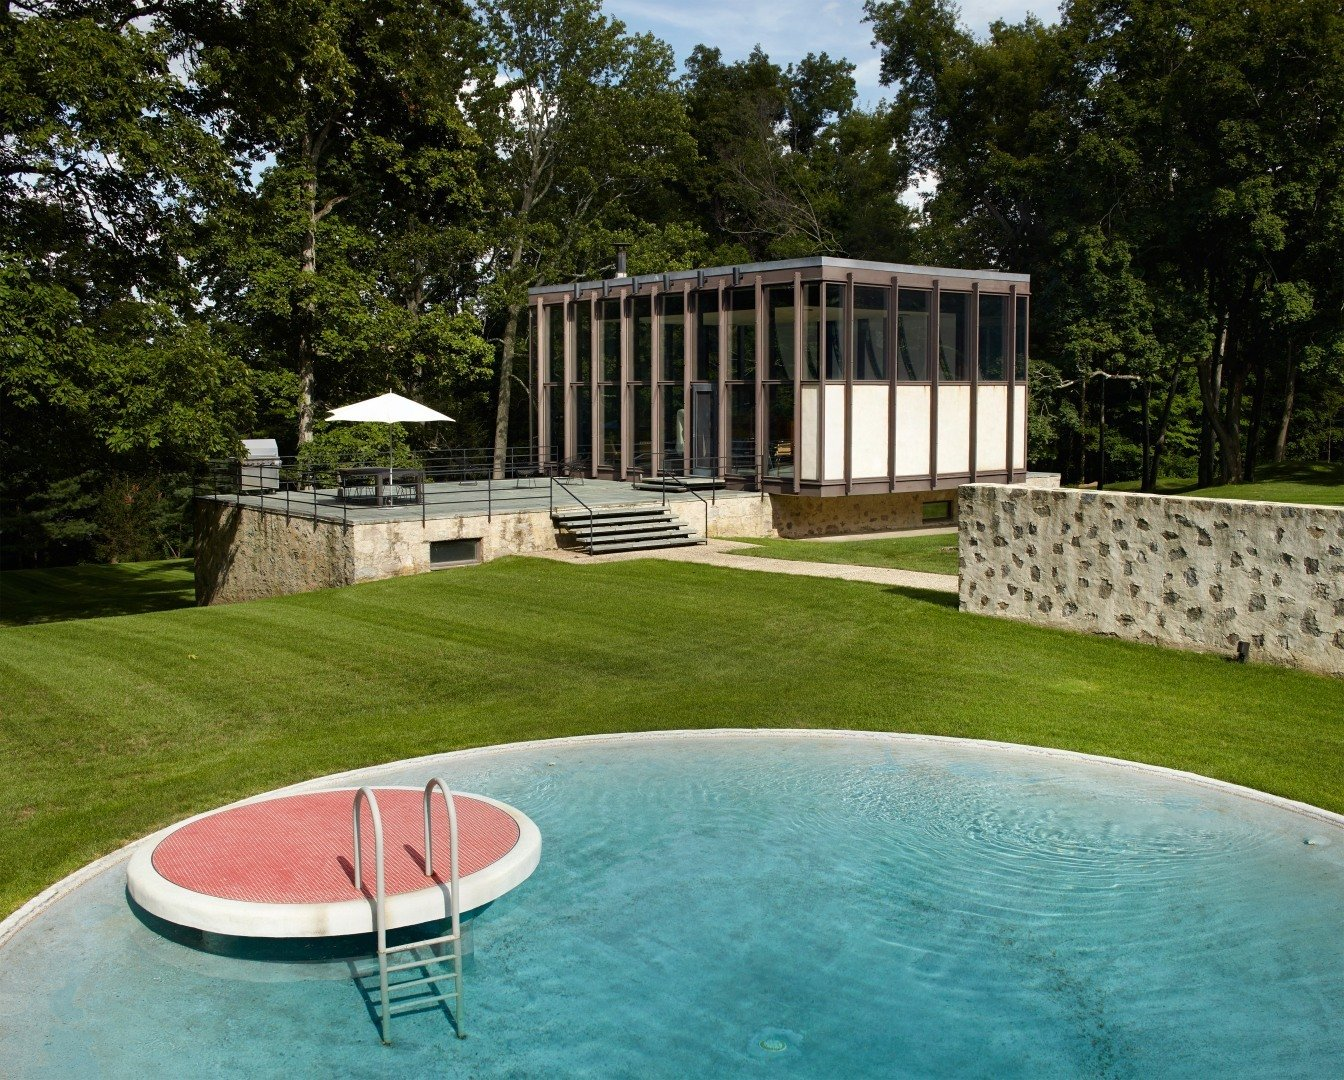 The new pool house and transformed barn that were created by Roger Ferris + Partners during a recent renovation, work together to create a courtyard that borders the original swimming pool. He finished the lilypad diving platform with red tile. To further connect the two iconic properties, the twin of this circular pool design can actually be found at the Glass House.  Photo 3 of 10 in After a Year on the Market, Philip Johnson's Wiley House Drops by $2 Million